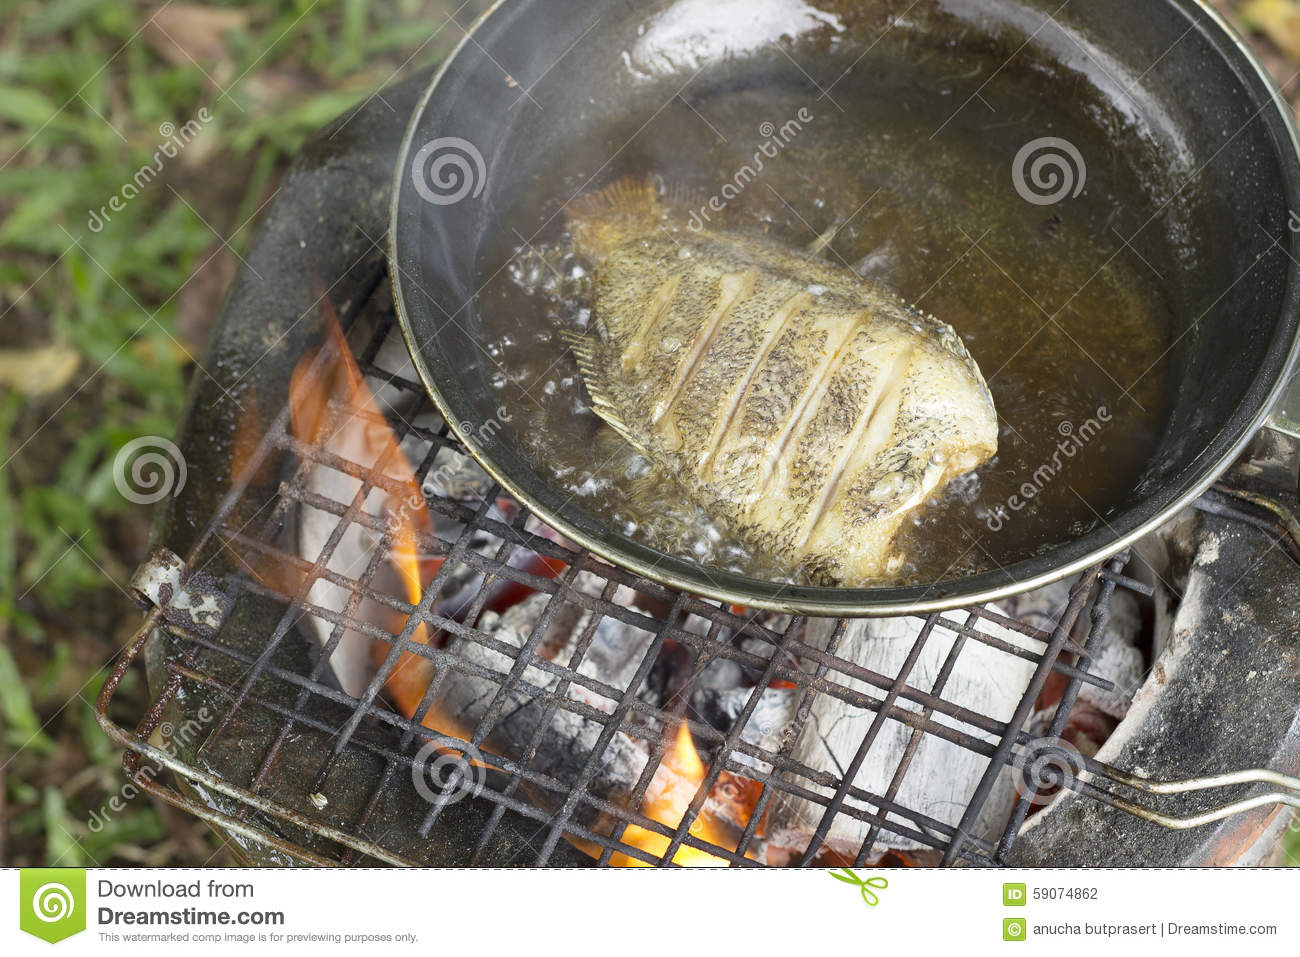 Cooking fry the fish on camping in the forest stock photo for Oil for frying fish